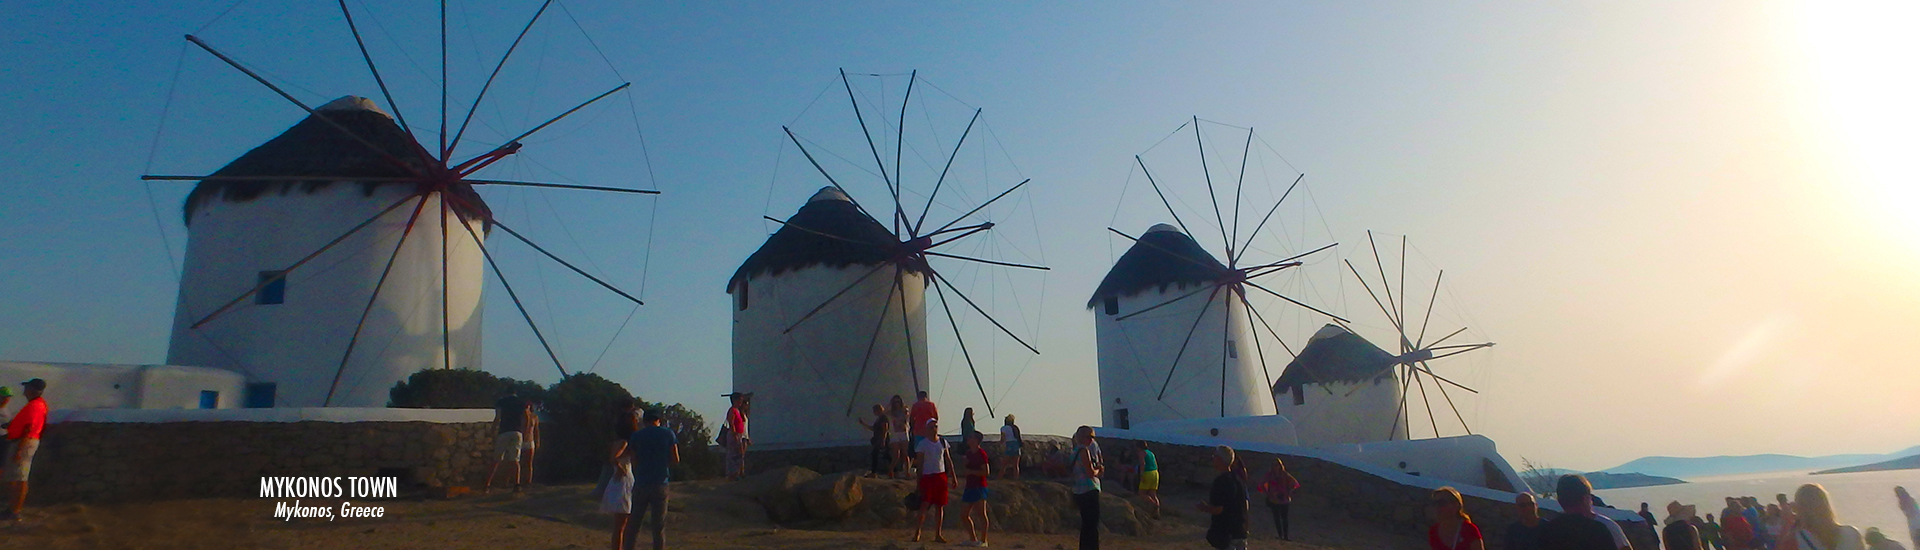 Mykonos Town - Windmills - Mykonos Greece - time travel blonde